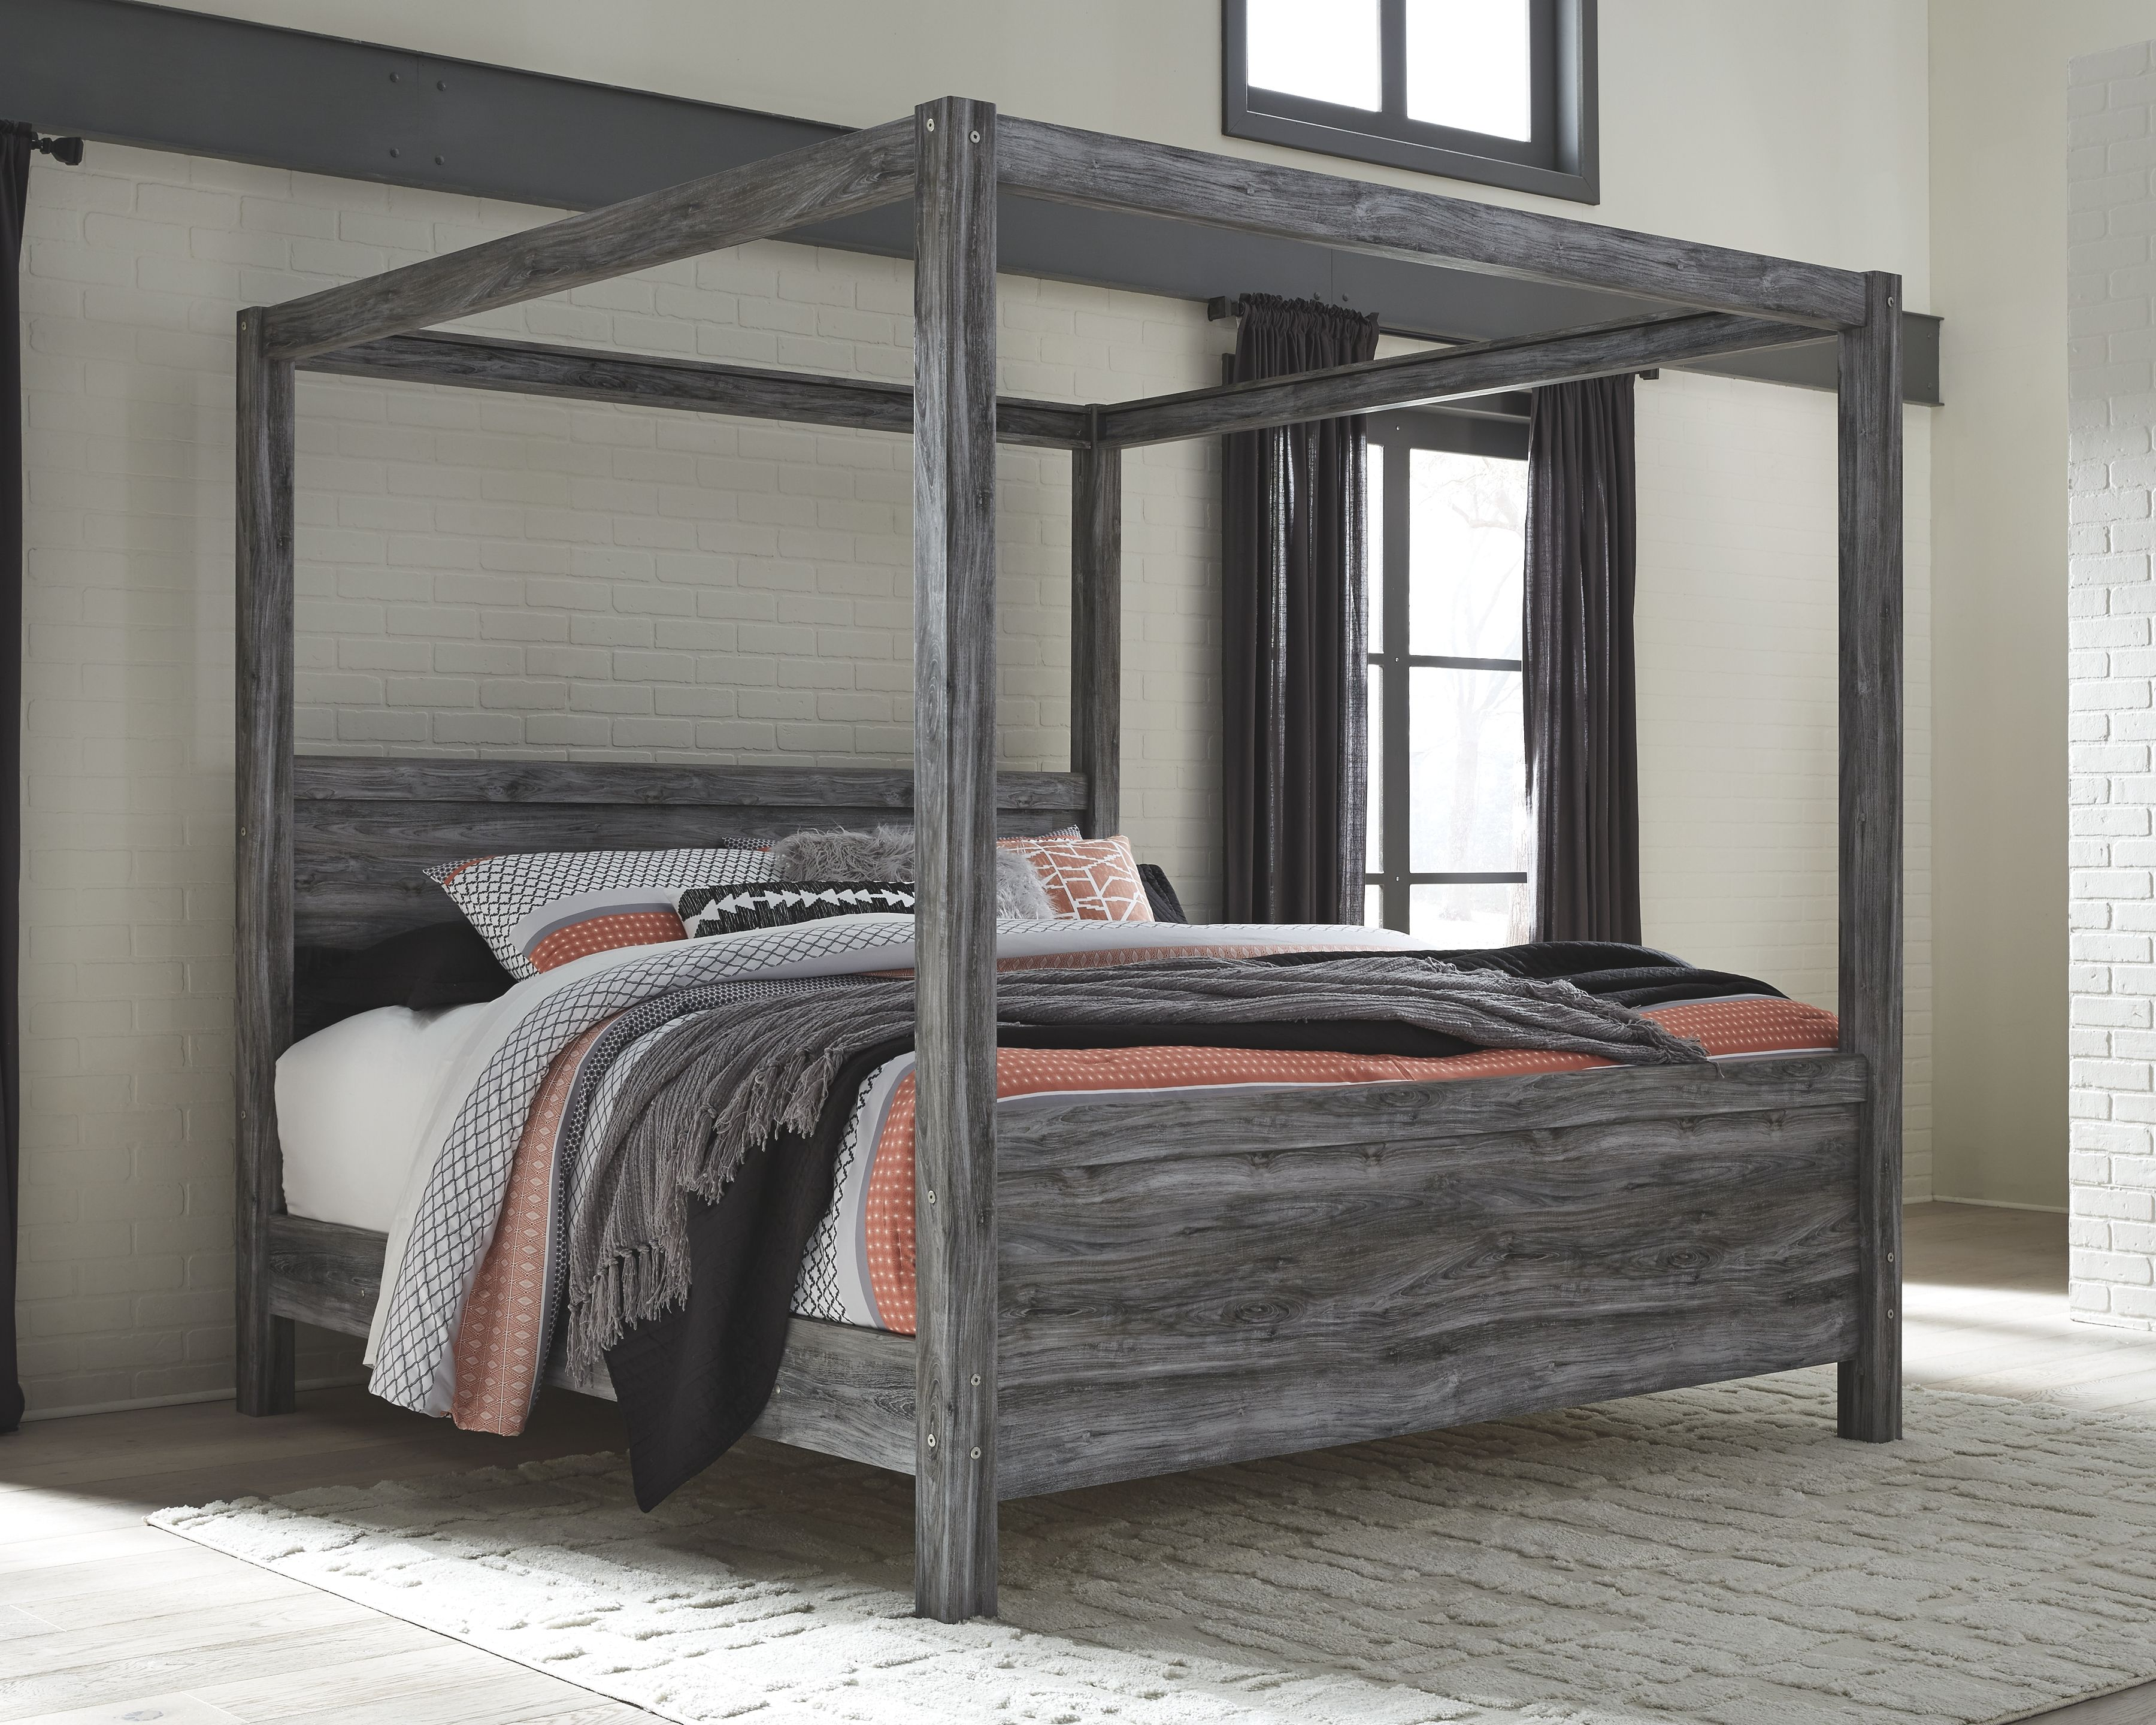 Baystorm King Poster Bed, Gray in 2020 Queen canopy bed